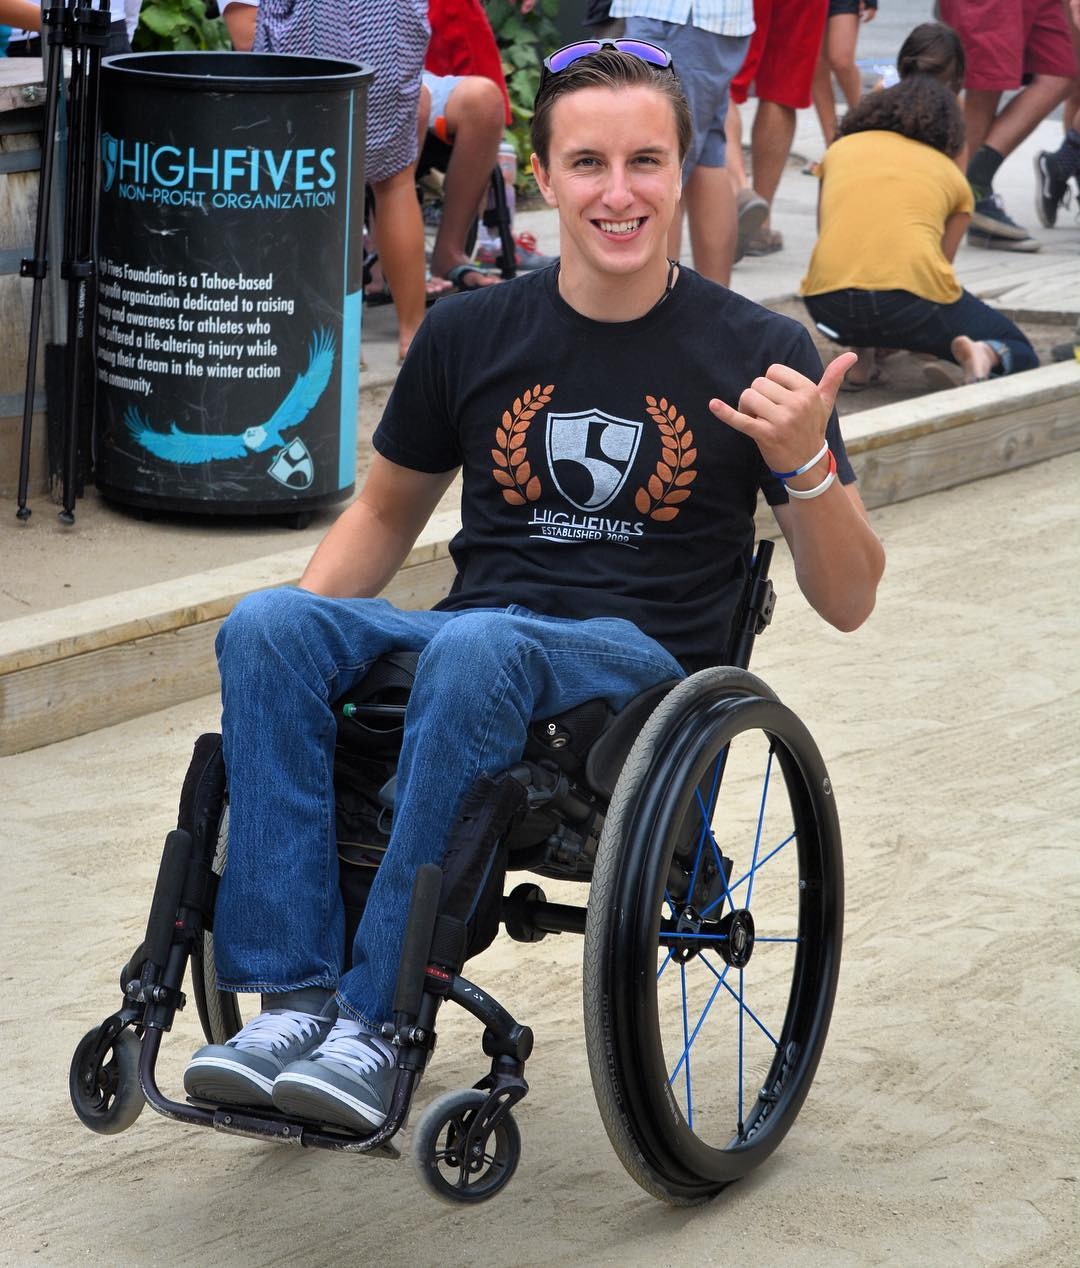 Birthday wishes go out to #HighFivesAthlete Nick Fairall! This guy has mono-skied for the first time, participated in a Paralympic mono-ski race camp, visited the @crj_healingctr in Truckee 3 times, participated in an adaptive waterski camp, road a...